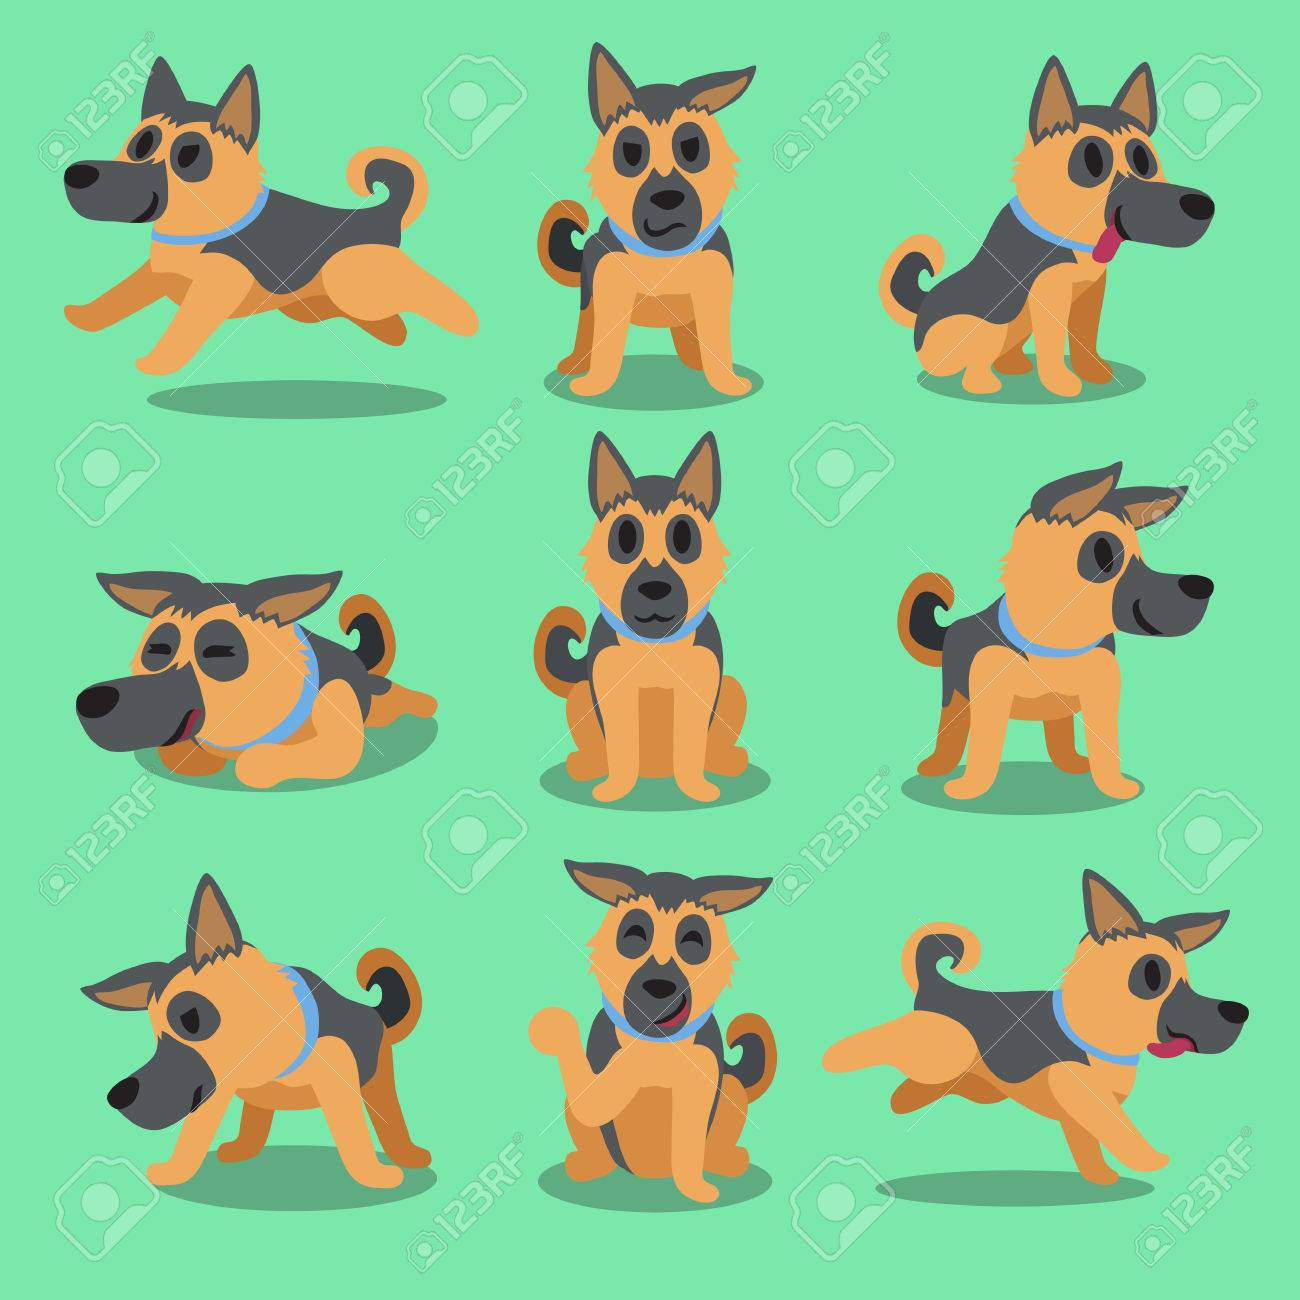 Cartoon Character German Shepherd Dog Poses Royalty Free Cliparts